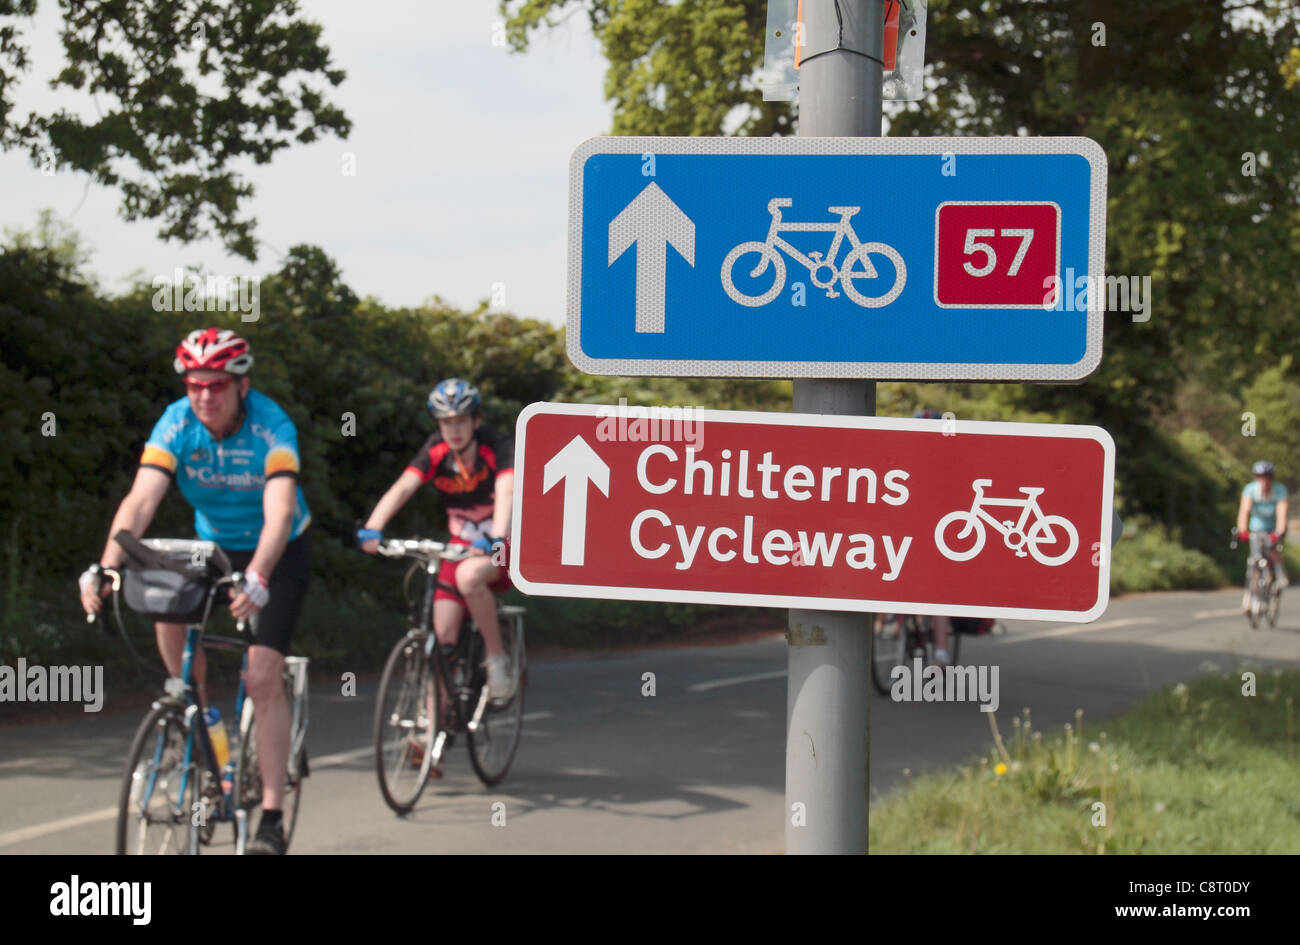 Cyclists ride past road signs for the Chilterns Cycleway and national cycle route 57 near Great Missenden, Buckinghamshire, - Stock Image